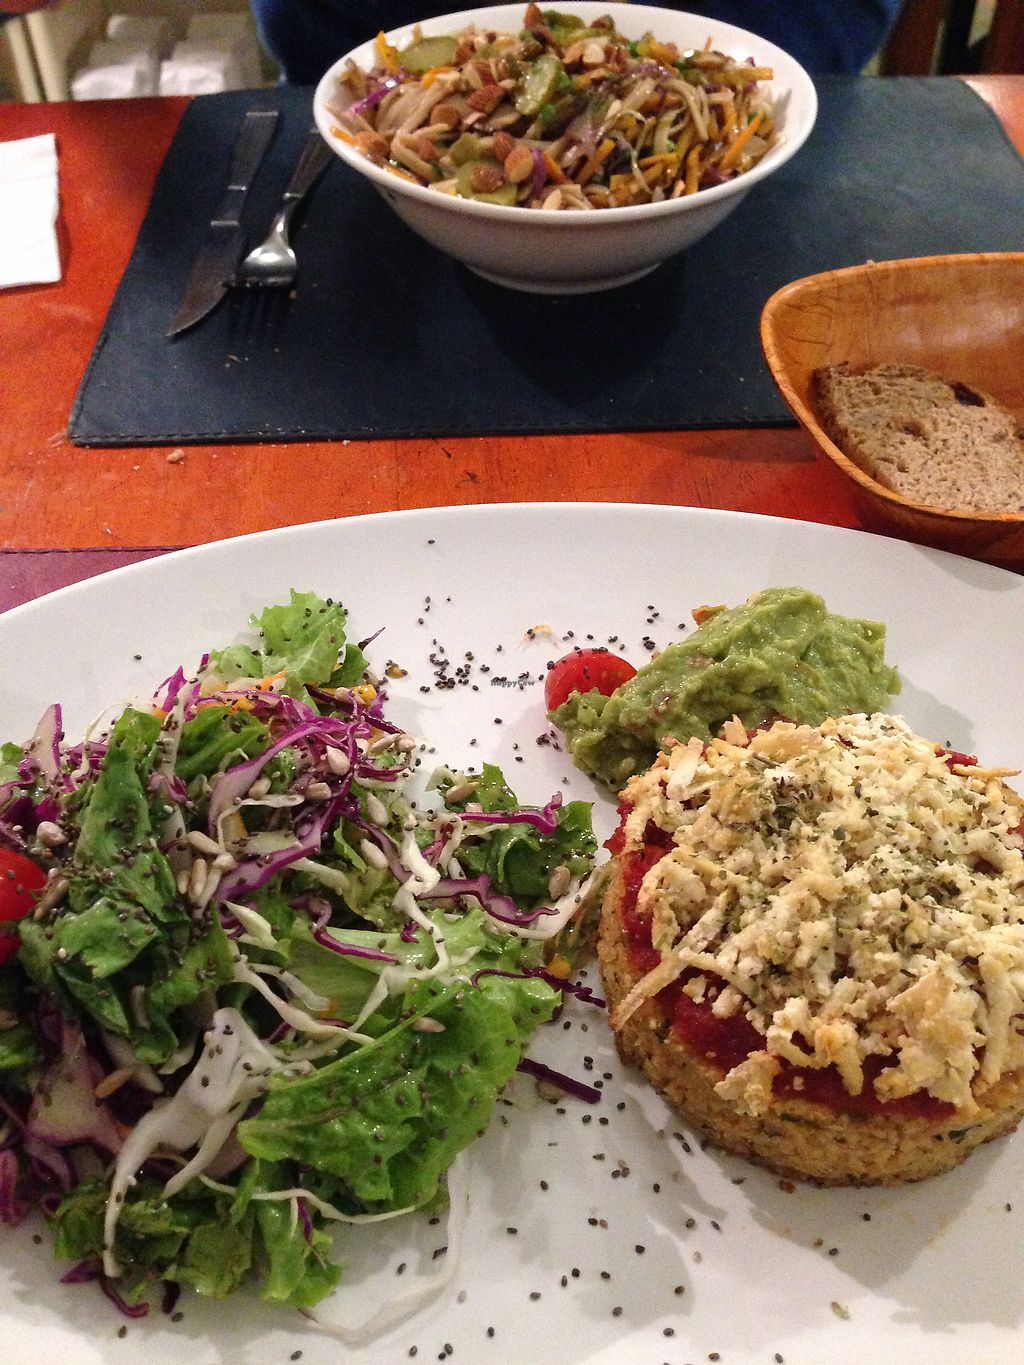 """Photo of CLOSED: Buenos Aires Verde - Gorriti  by <a href=""""/members/profile/Calandria"""">Calandria</a> <br/>Mijo burger & veggie wok <br/> January 6, 2018  - <a href='/contact/abuse/image/16747/343673'>Report</a>"""